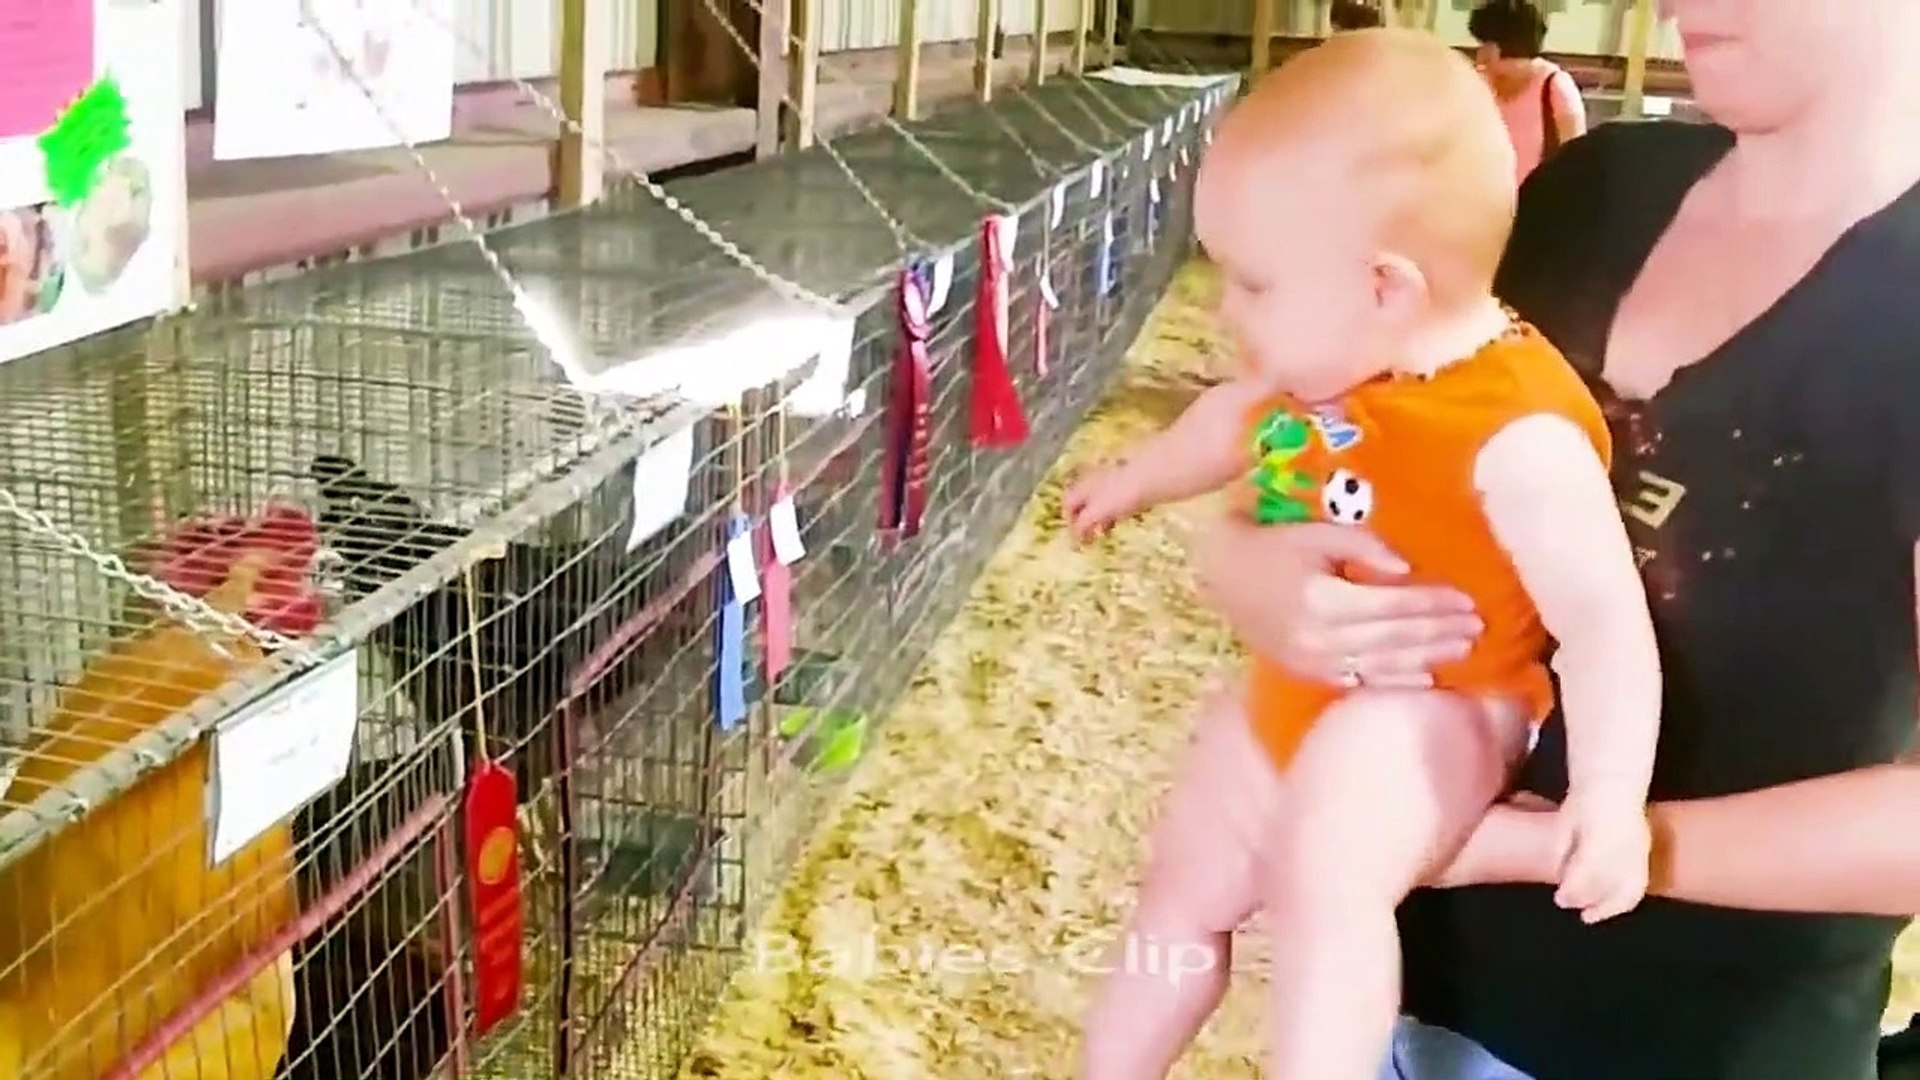 Cute Baby and Pets Videos - Cute Birds and  Babies videos